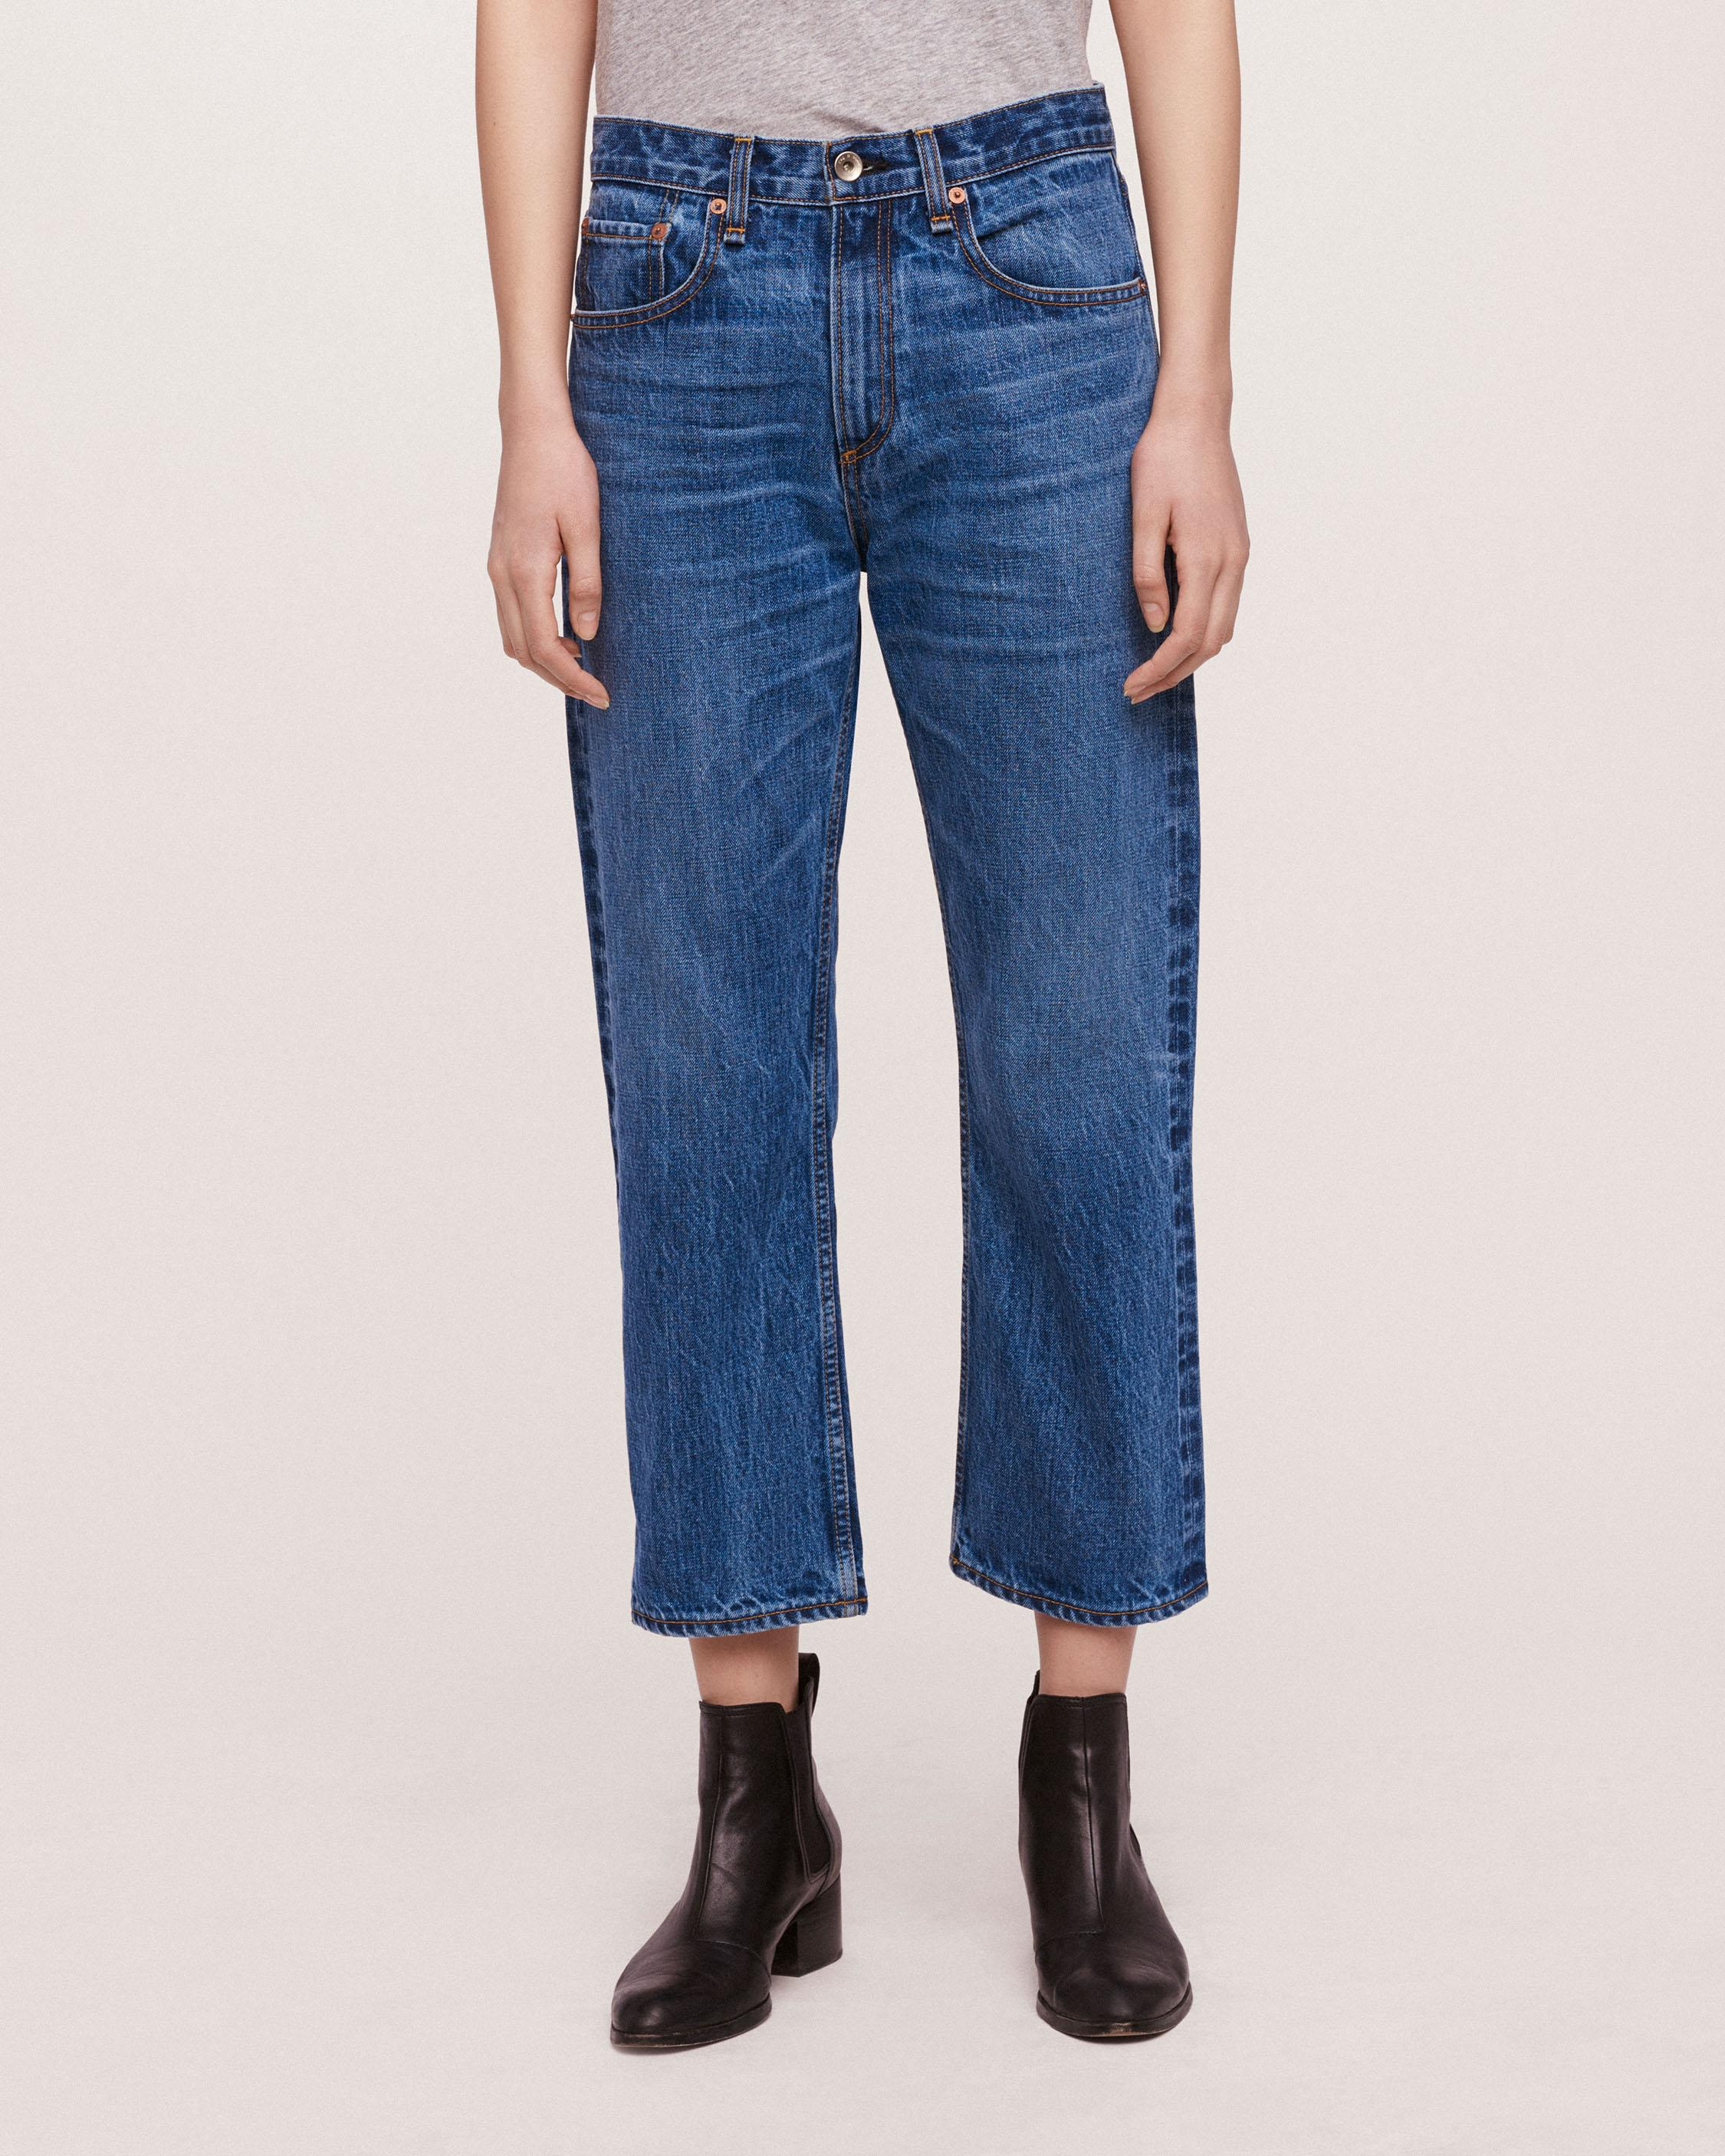 Jeans Pour Femmes Jeans Marilyn Ses AyS4YZ2UiW